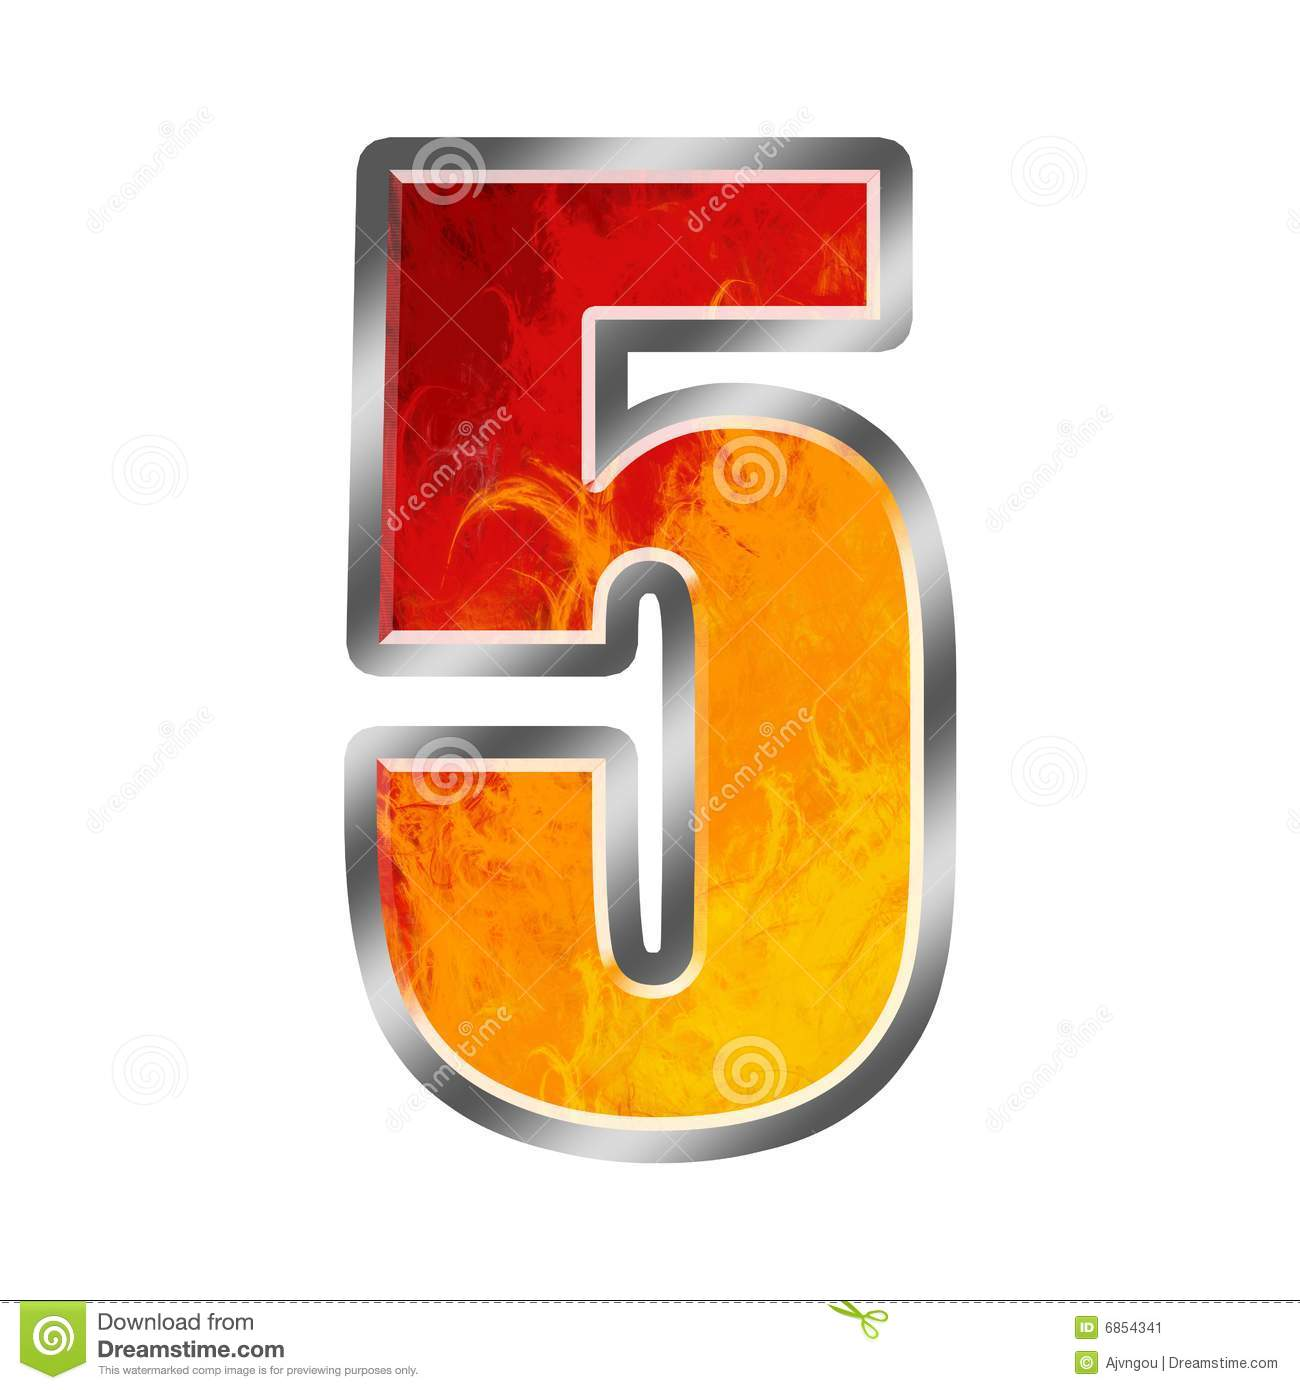 More similar stock images of ` Flames Alphabet number 5 five `